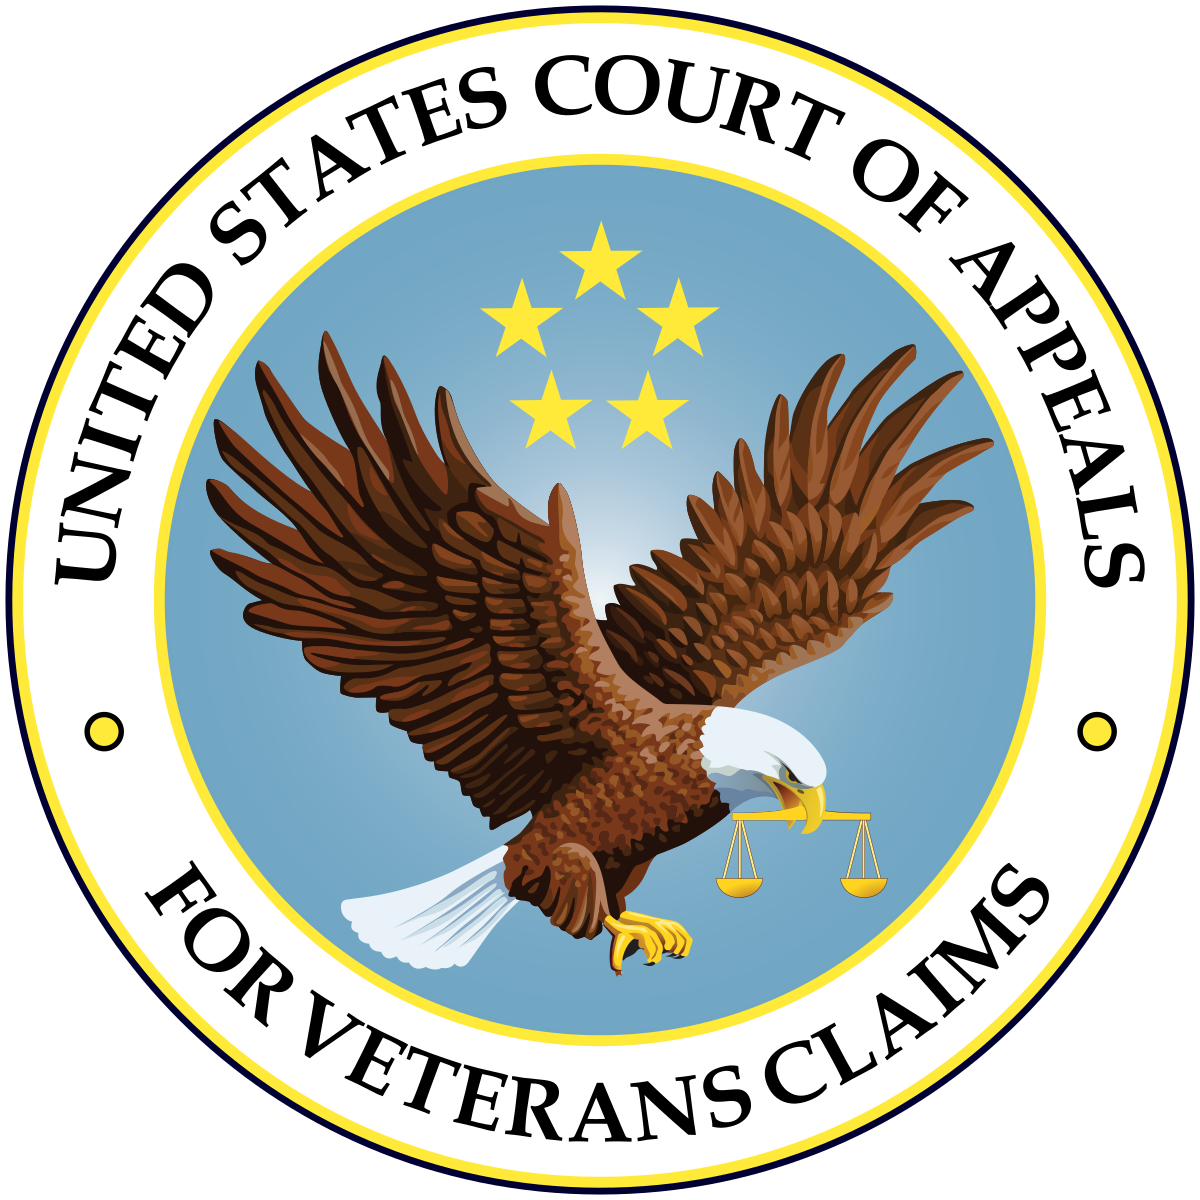 U.S. Court of Appeals for Veterans' Claims